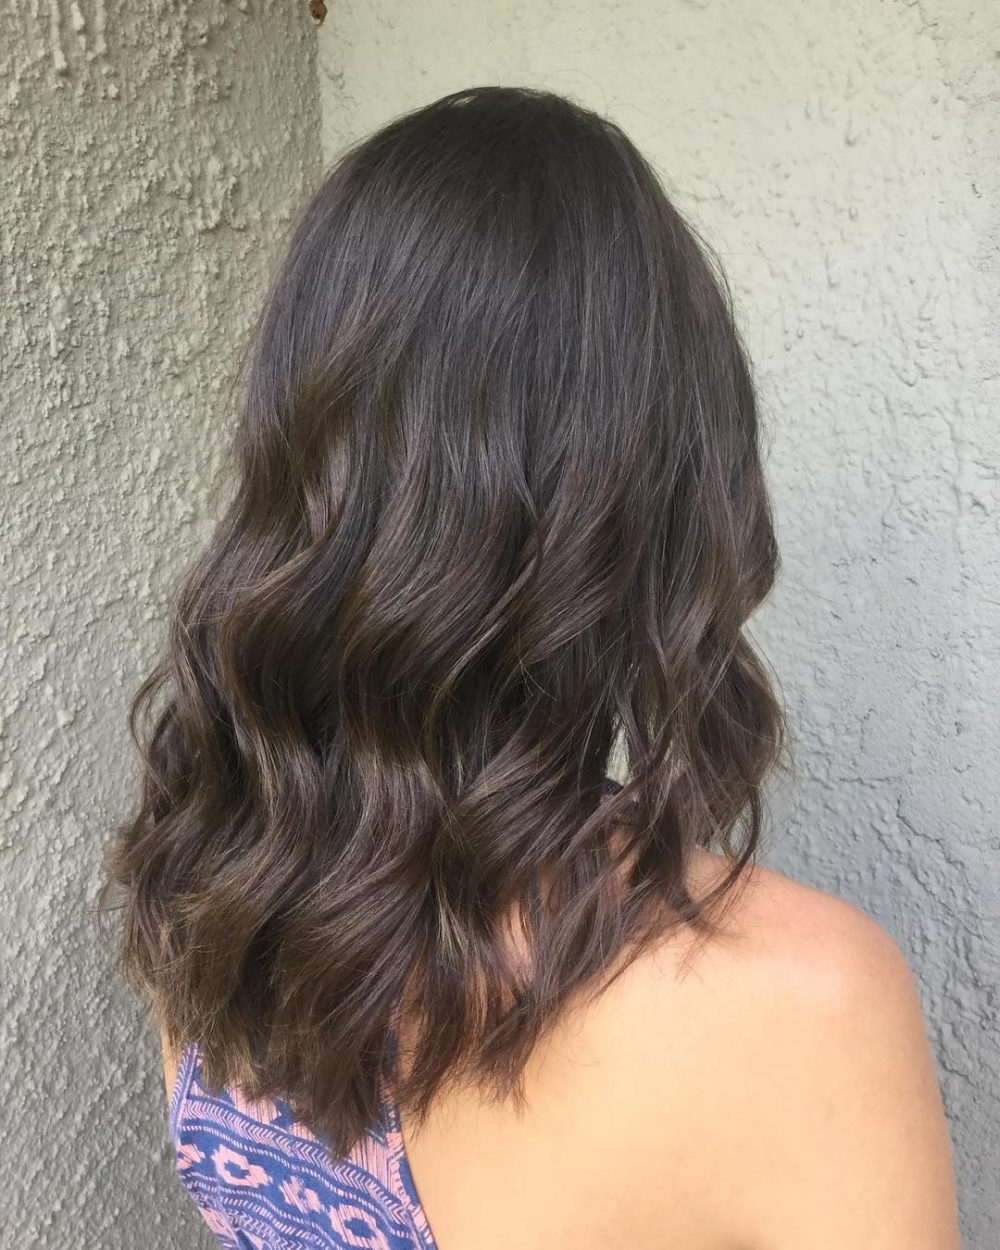 37 Chic Medium Length Wavy Hairstyles In 2019 With Regard To Most Current Medium Haircuts For Wavy Hair (View 5 of 20)